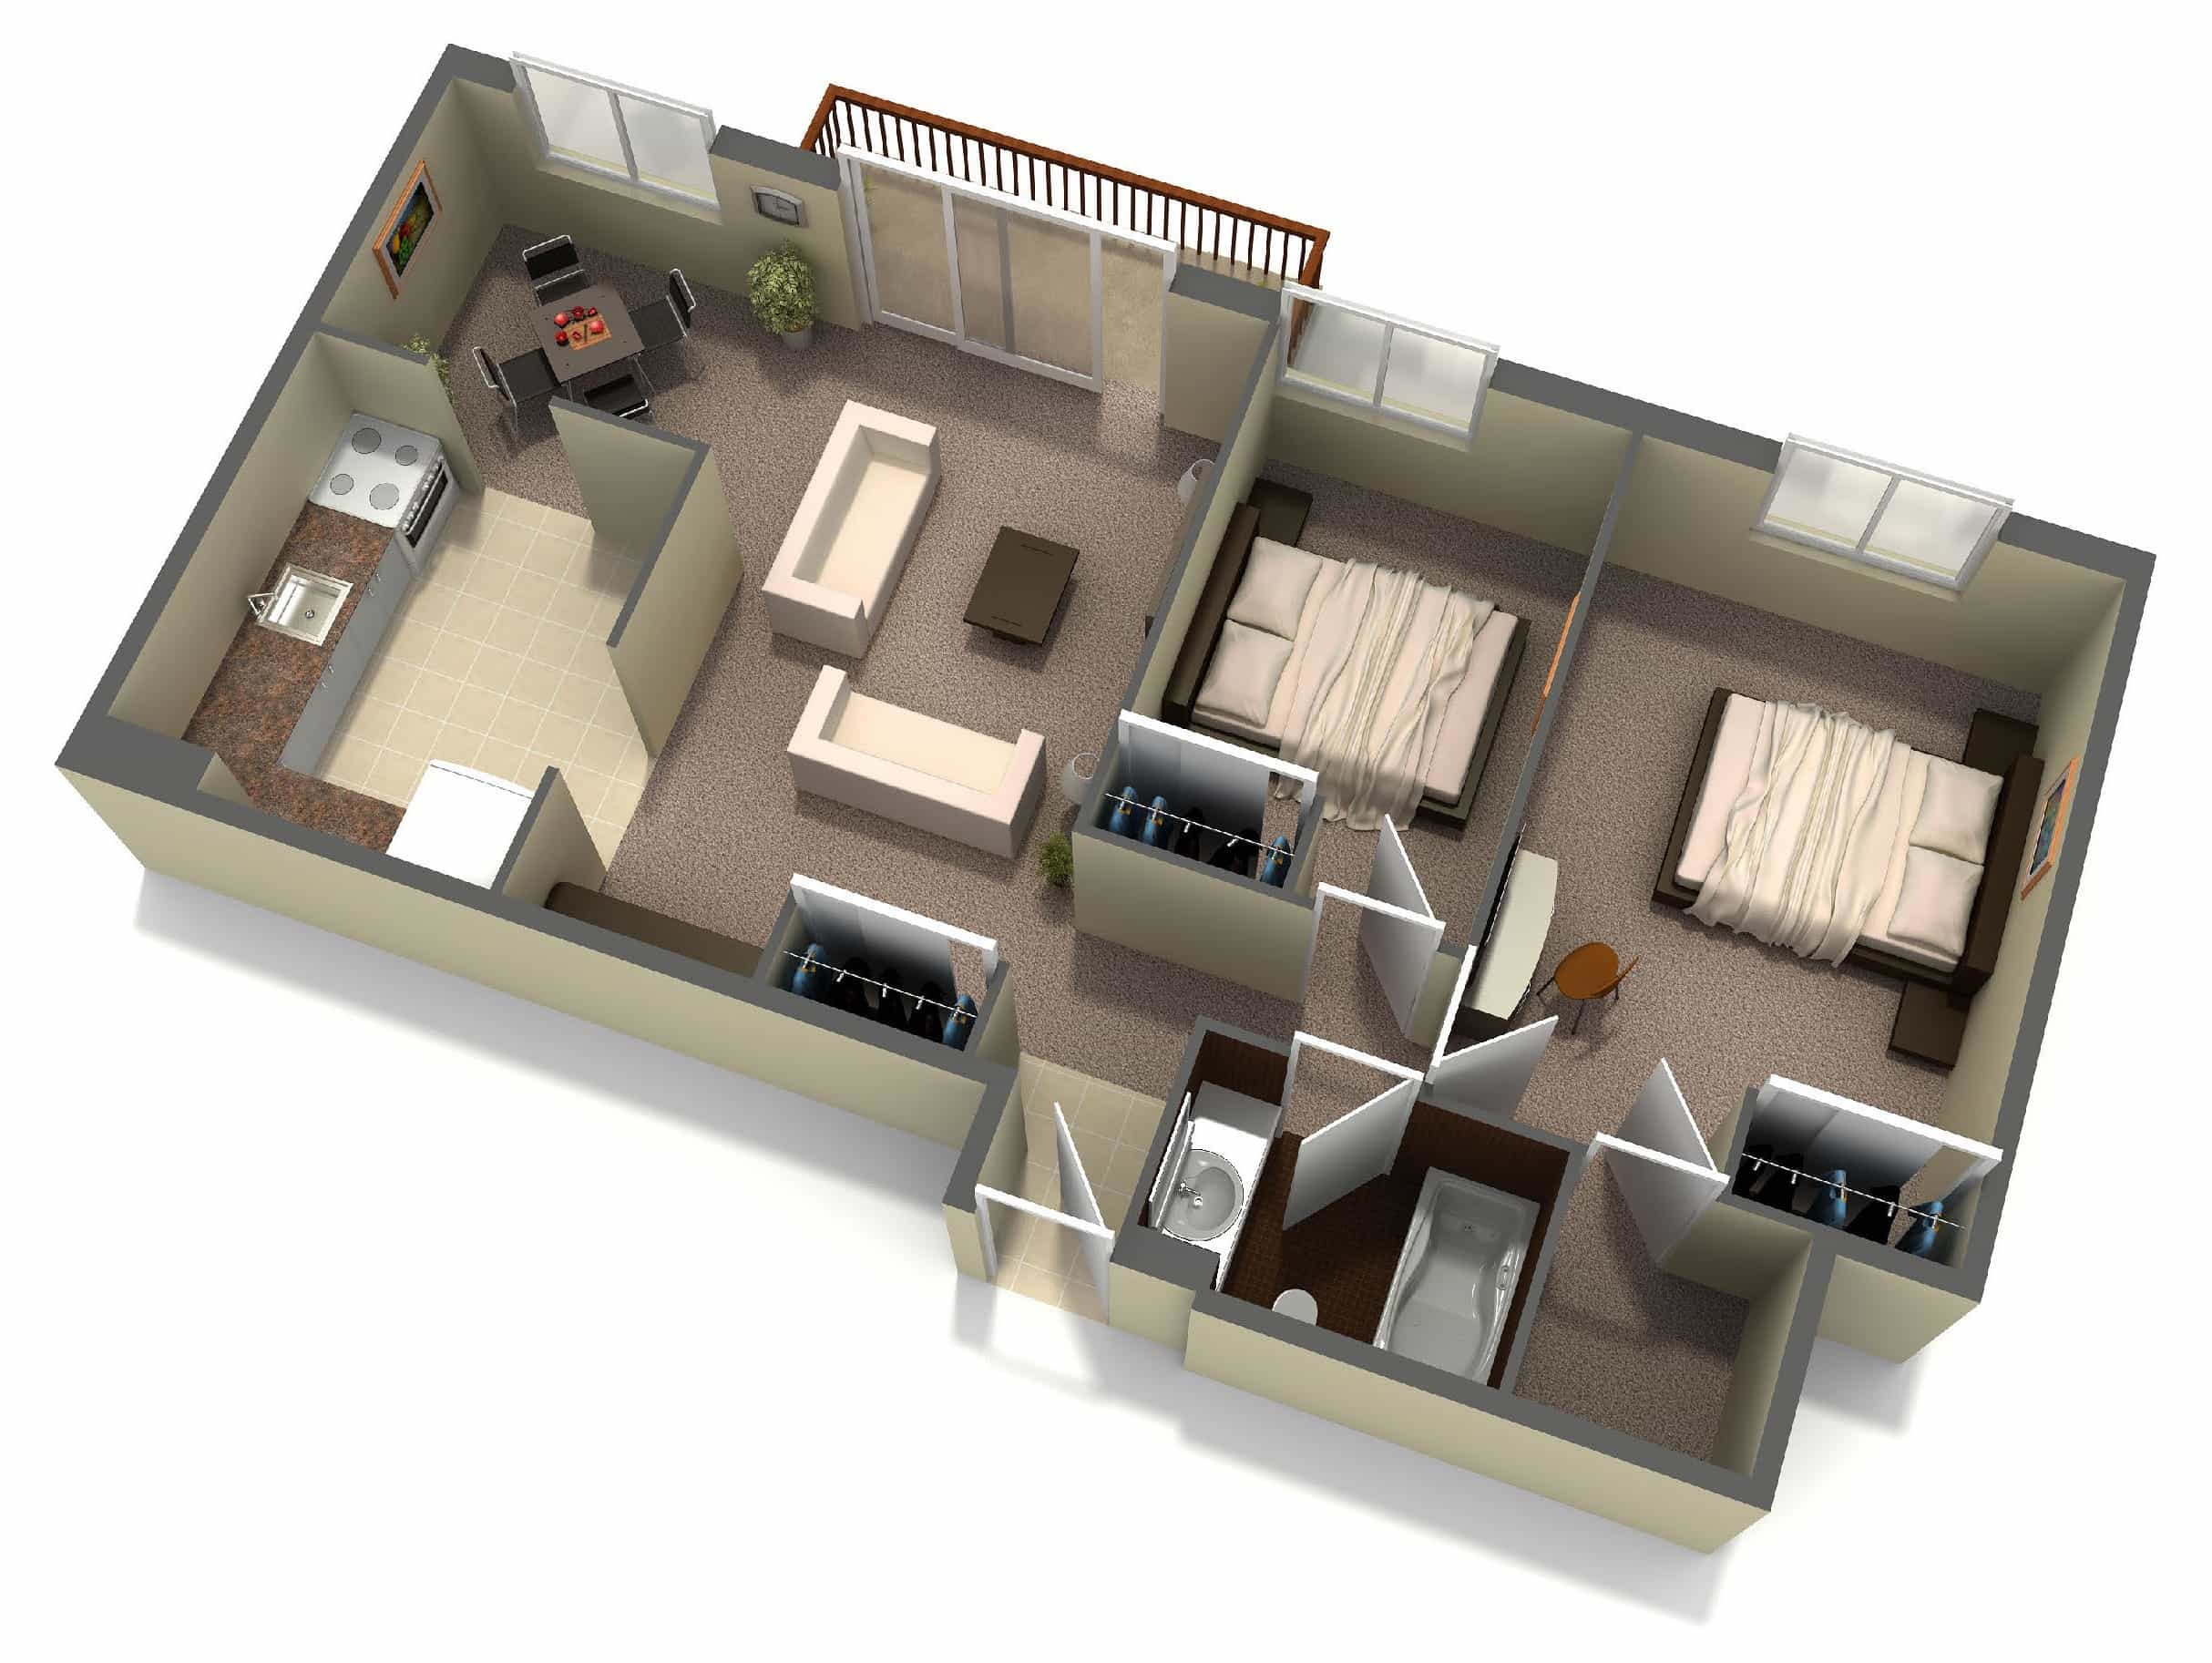 700 Square Feet House Floor Plans 3D Layout With 2 Bedroom (Image 10 of 17)